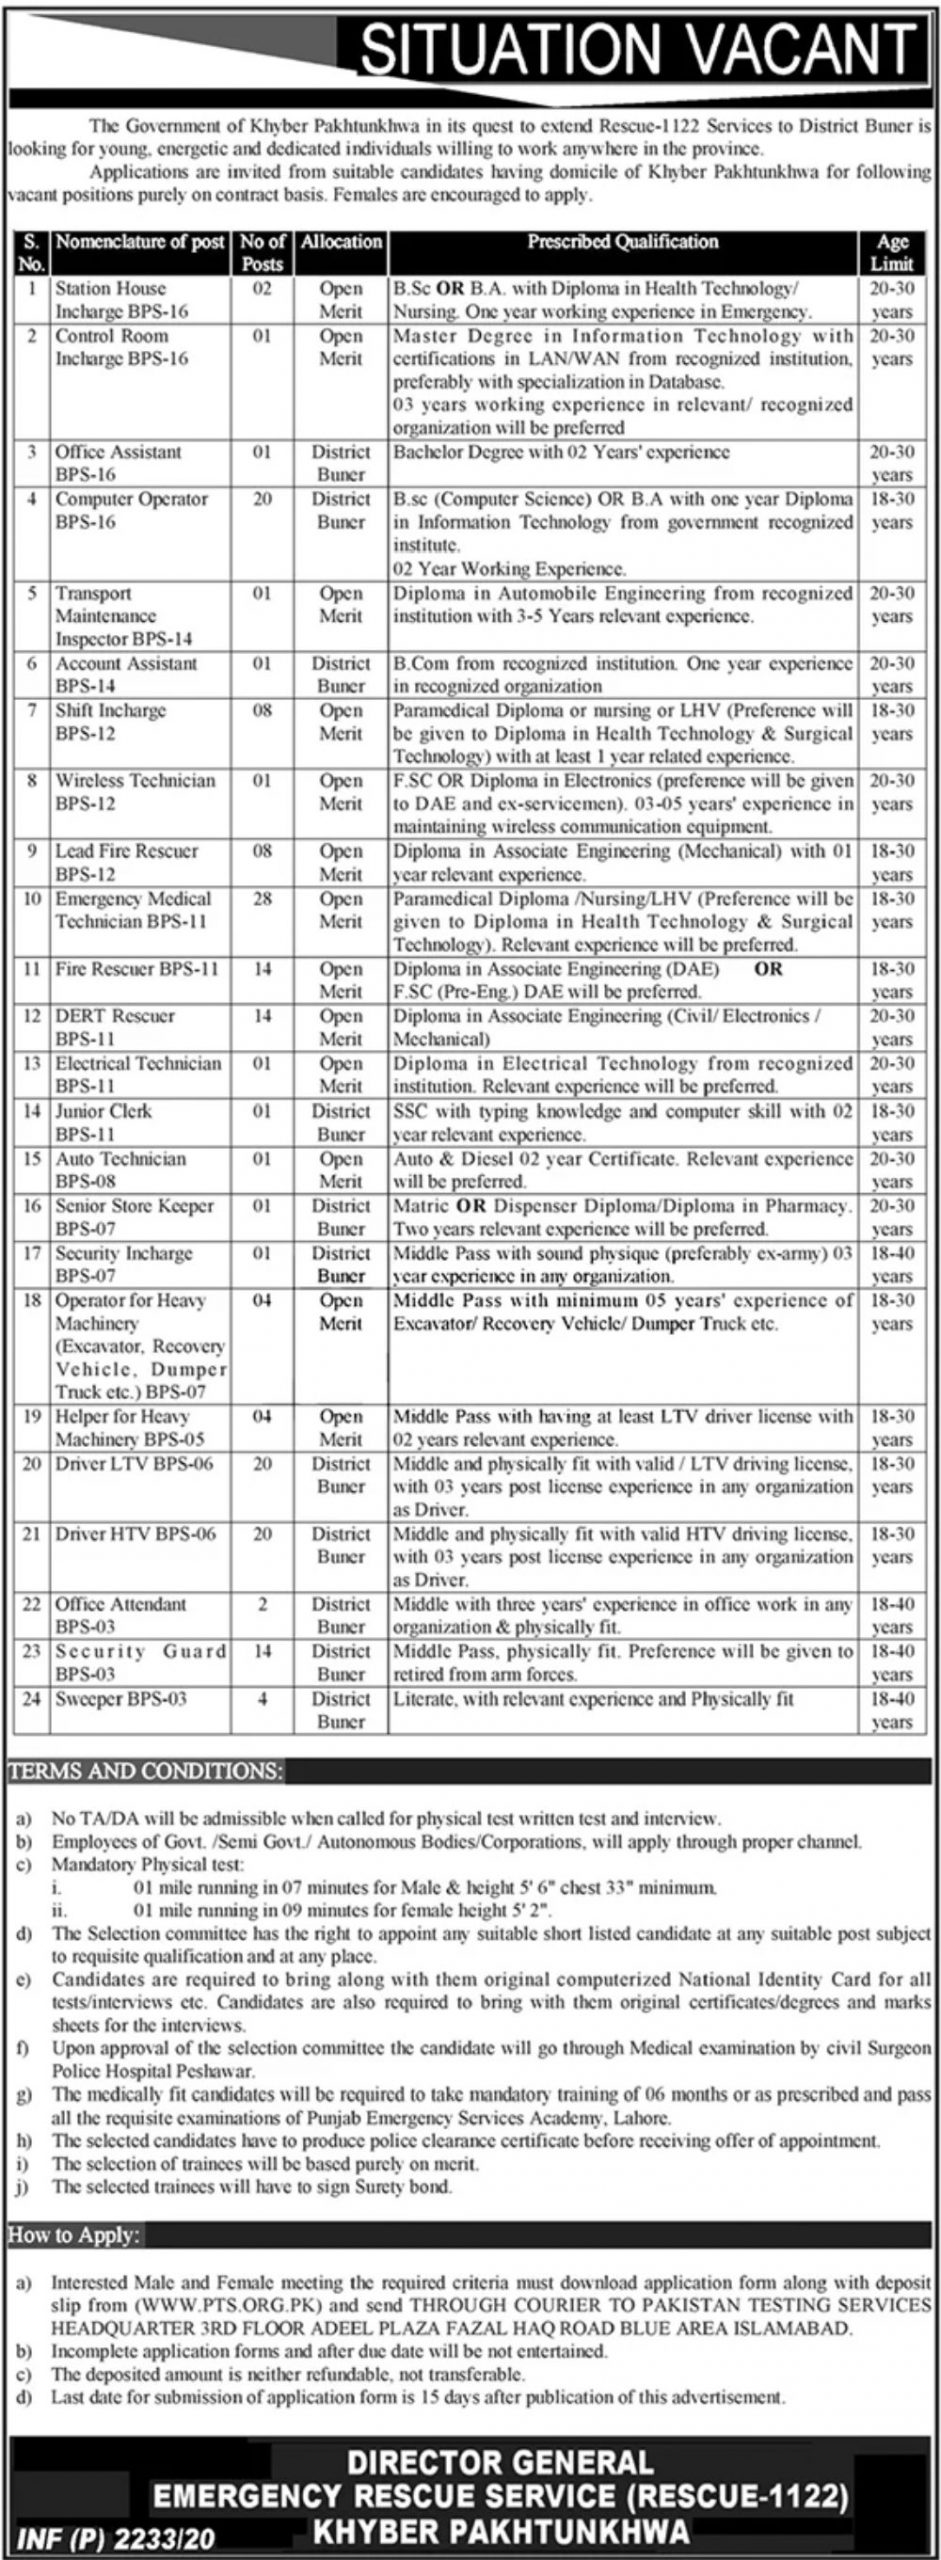 Rescue 1122 Government of Khyber Pakhtunkhwa Jobs June 2020